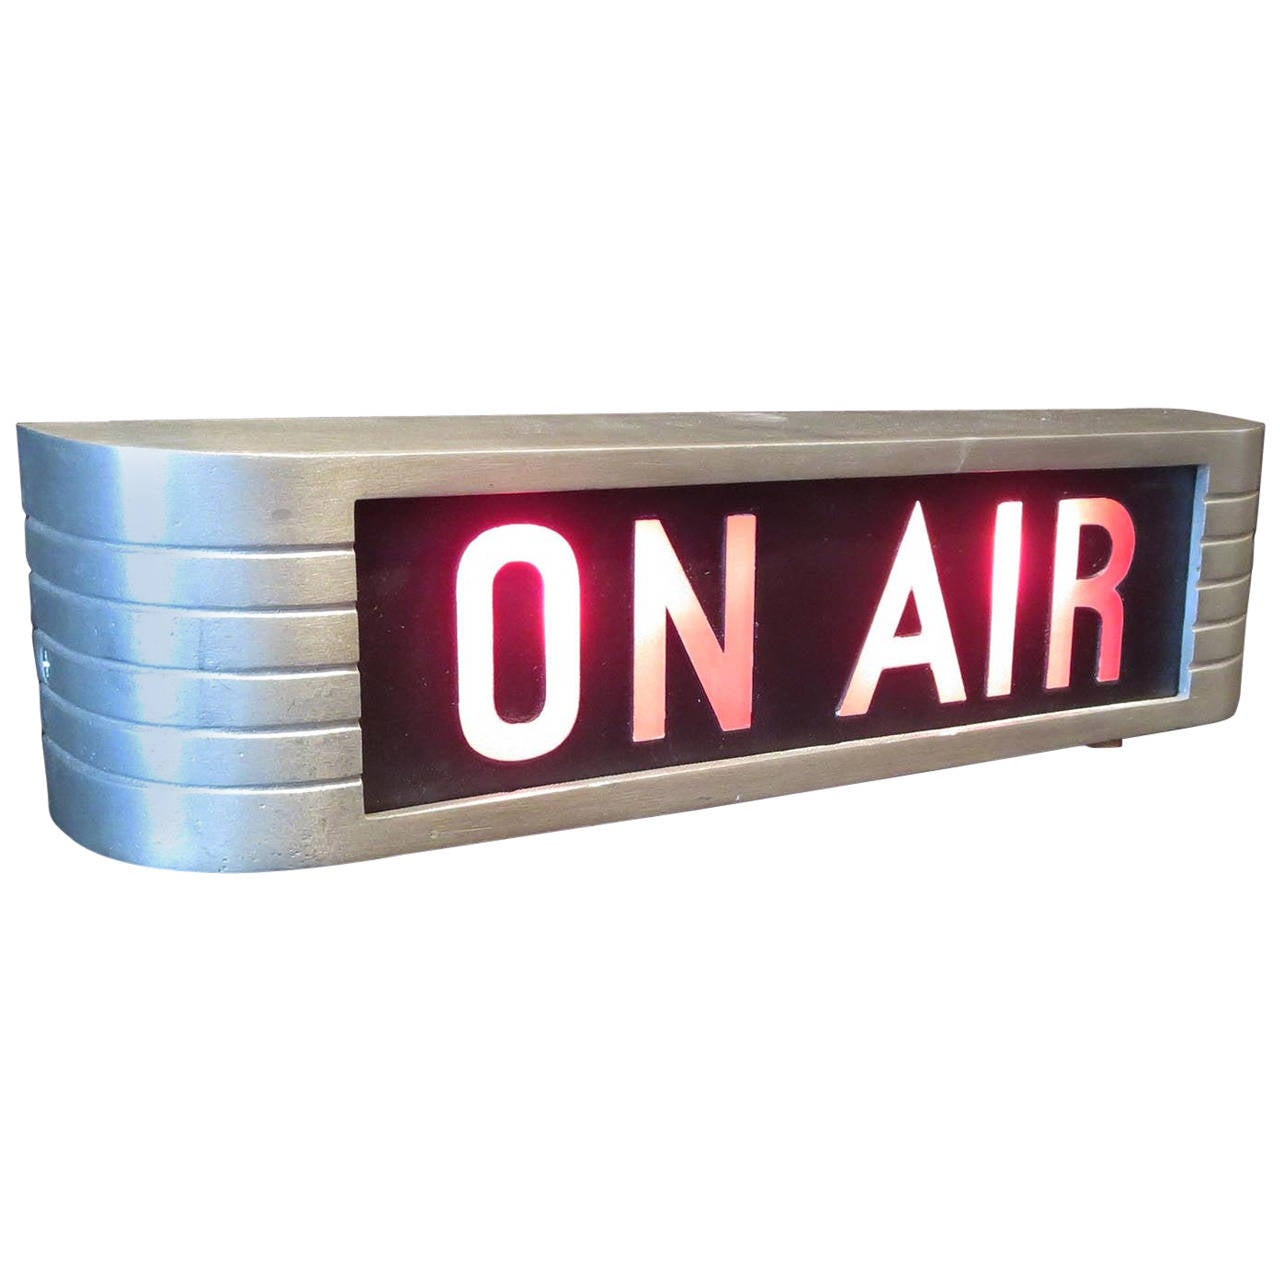 Rca Victor Quot On Air Quot Lighted Recording Sign At 1stdibs